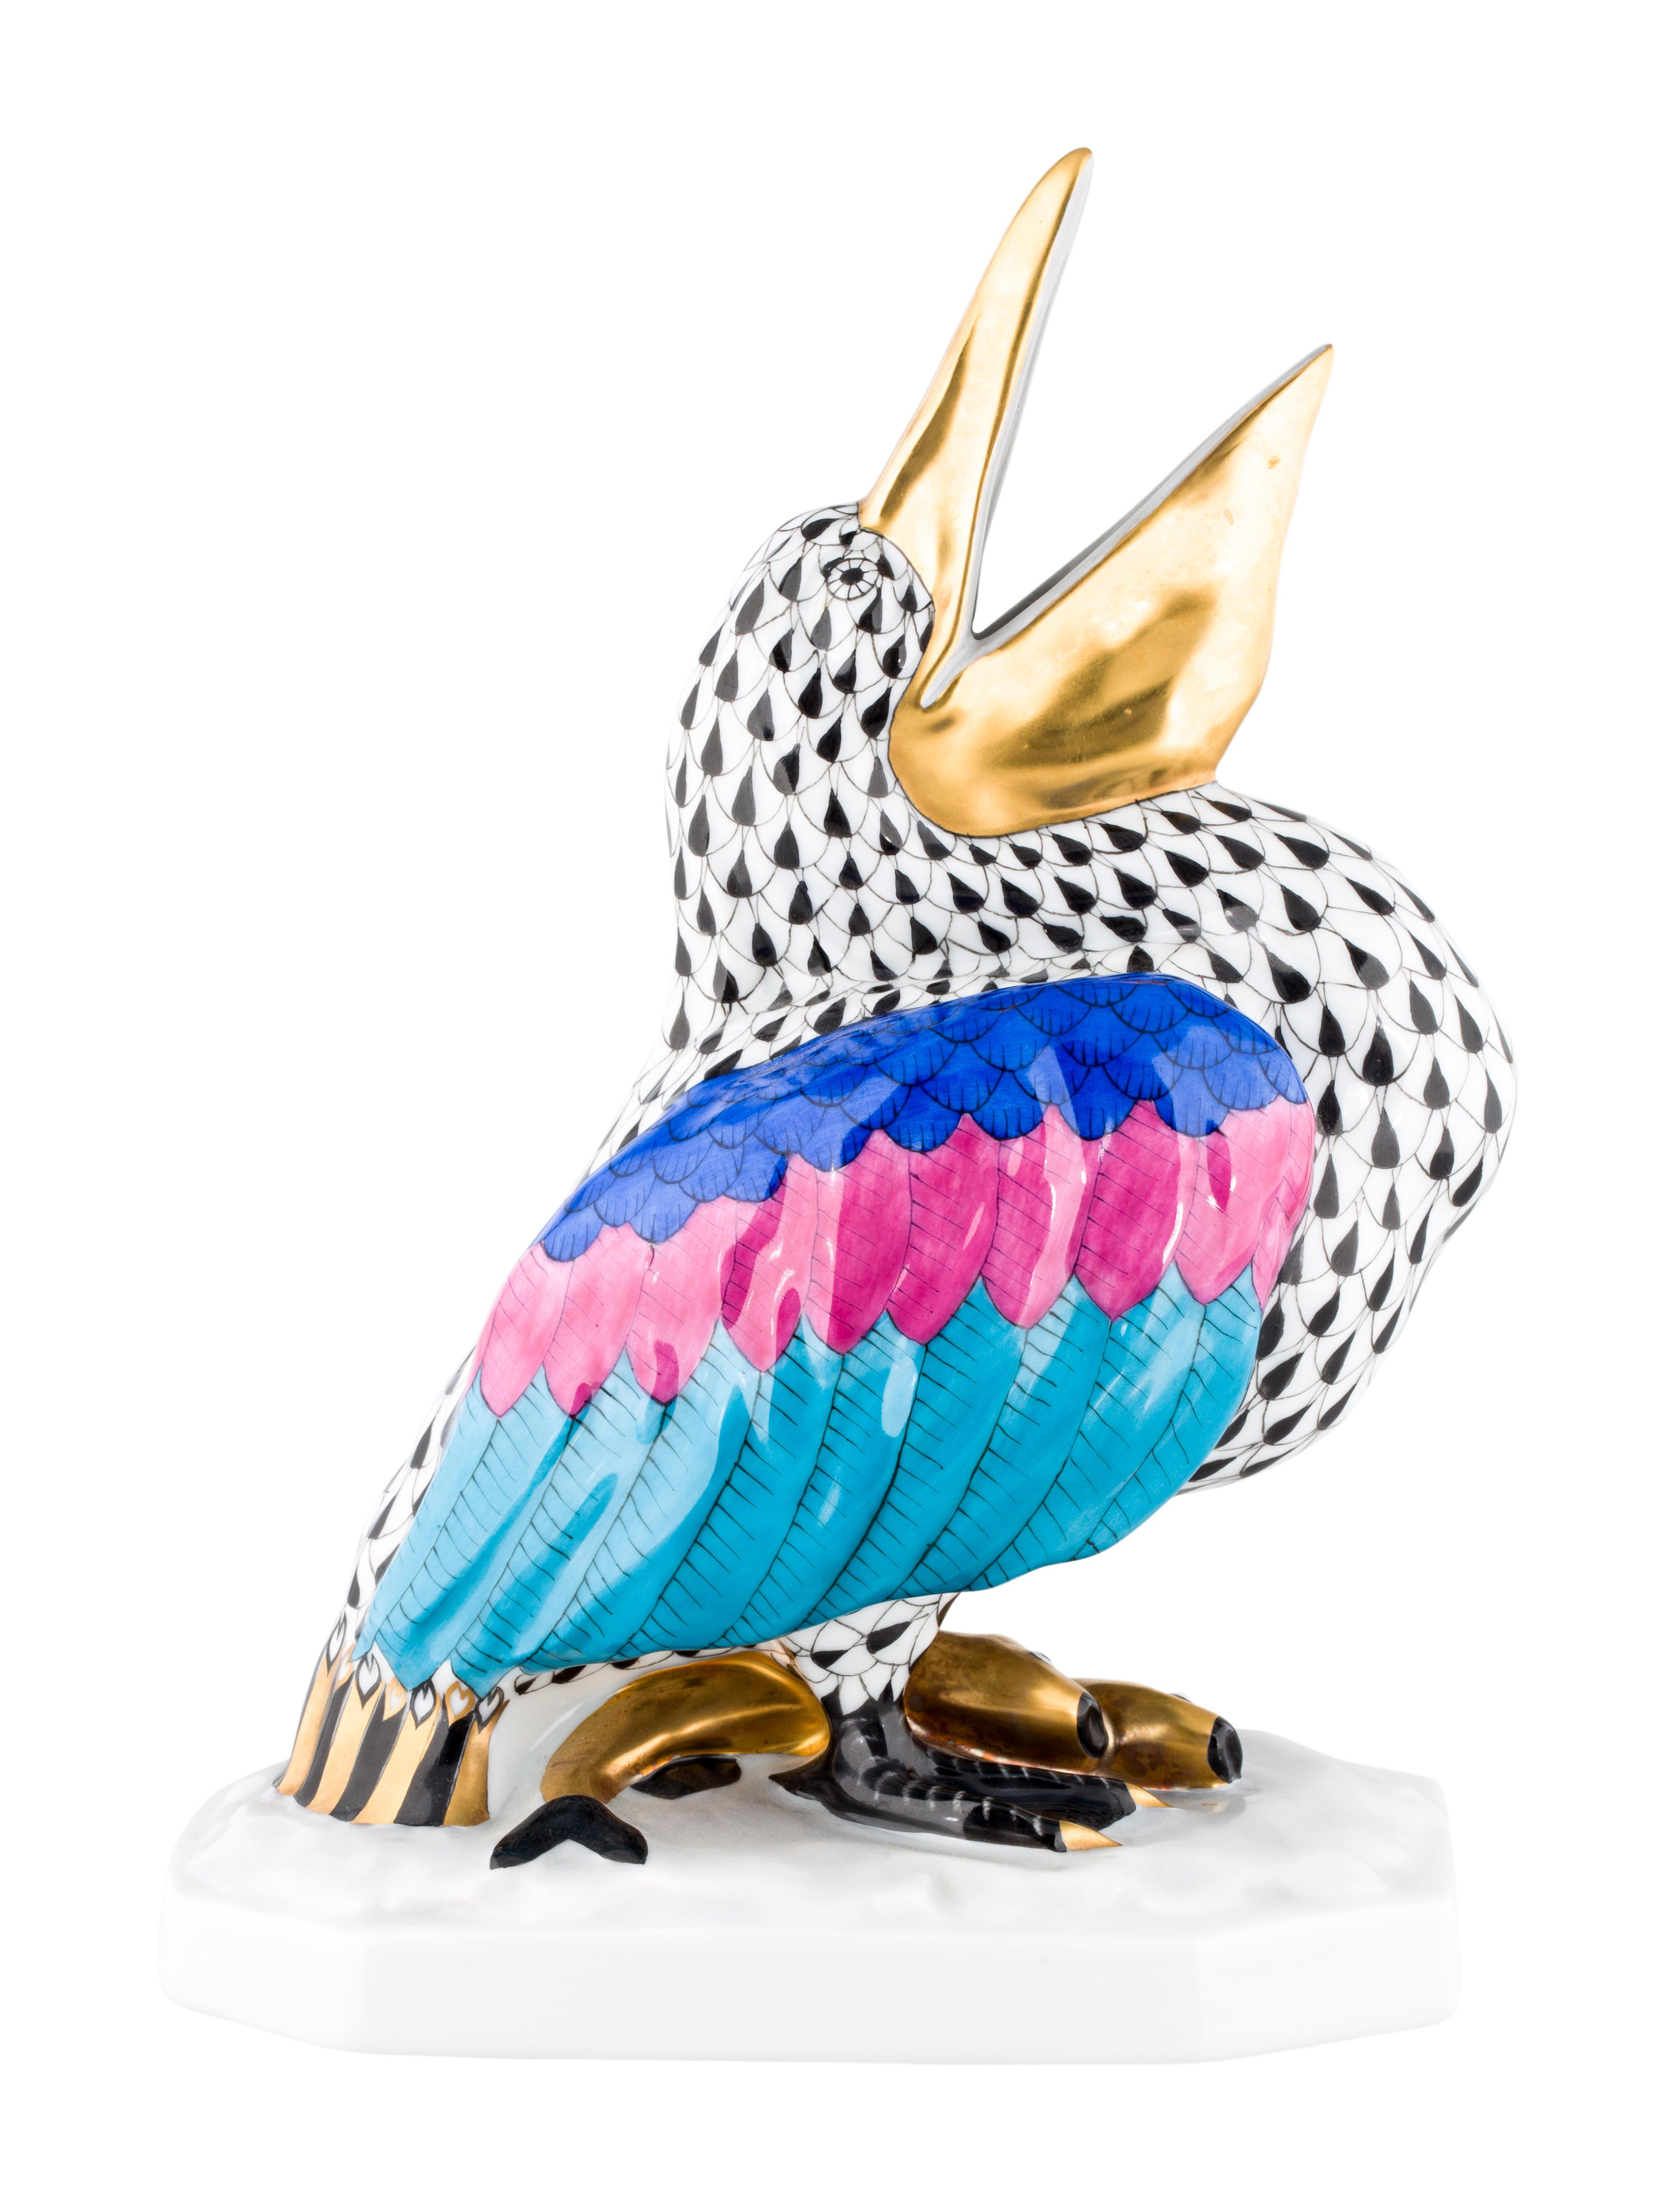 Herend Porcelain Pelican Figurine Decor And Accessories